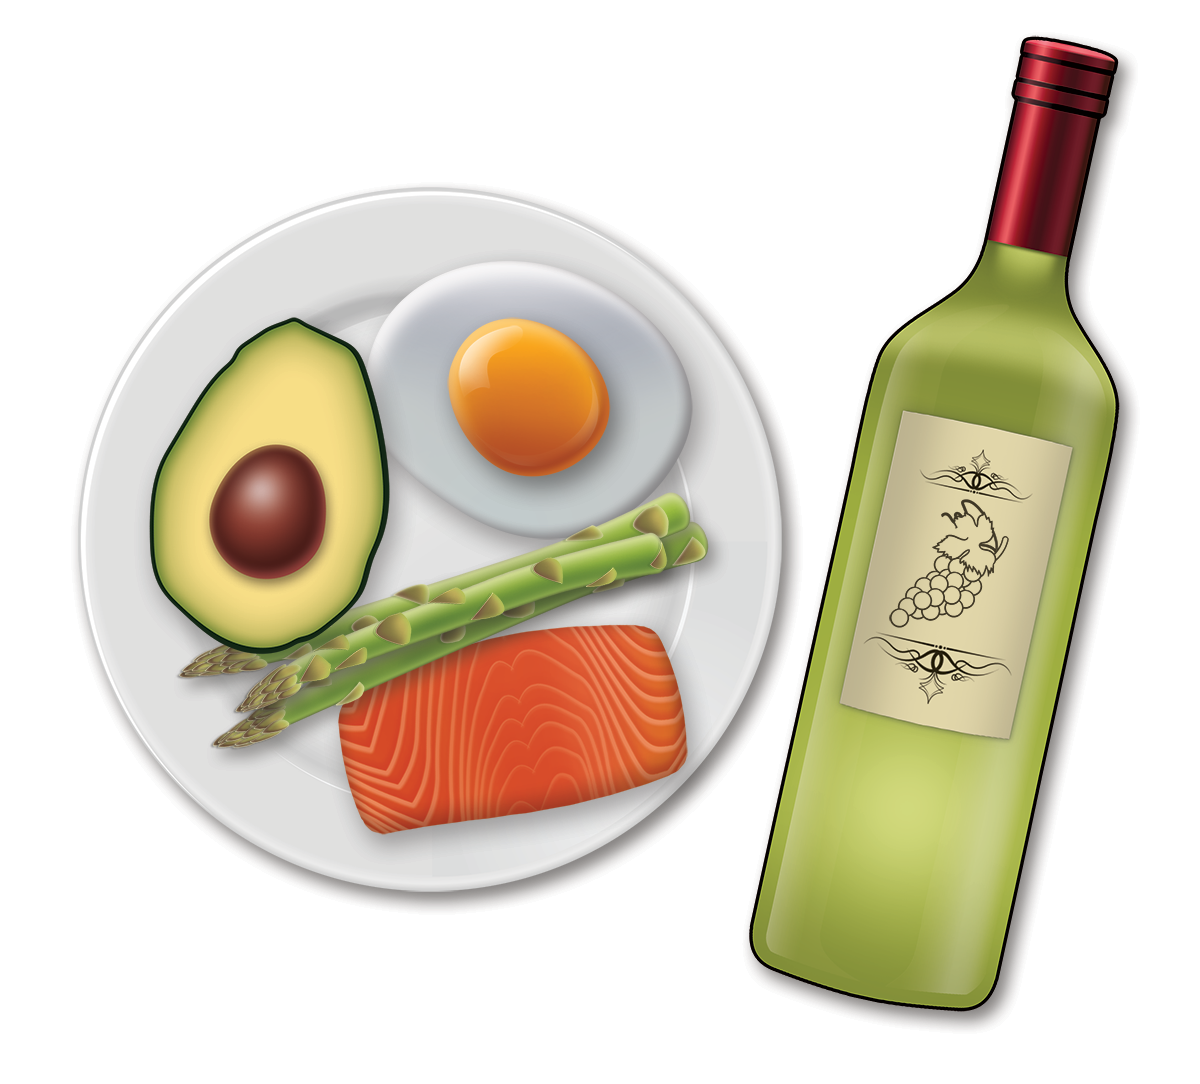 A ketogenic-friendly meal and a bottle of wine